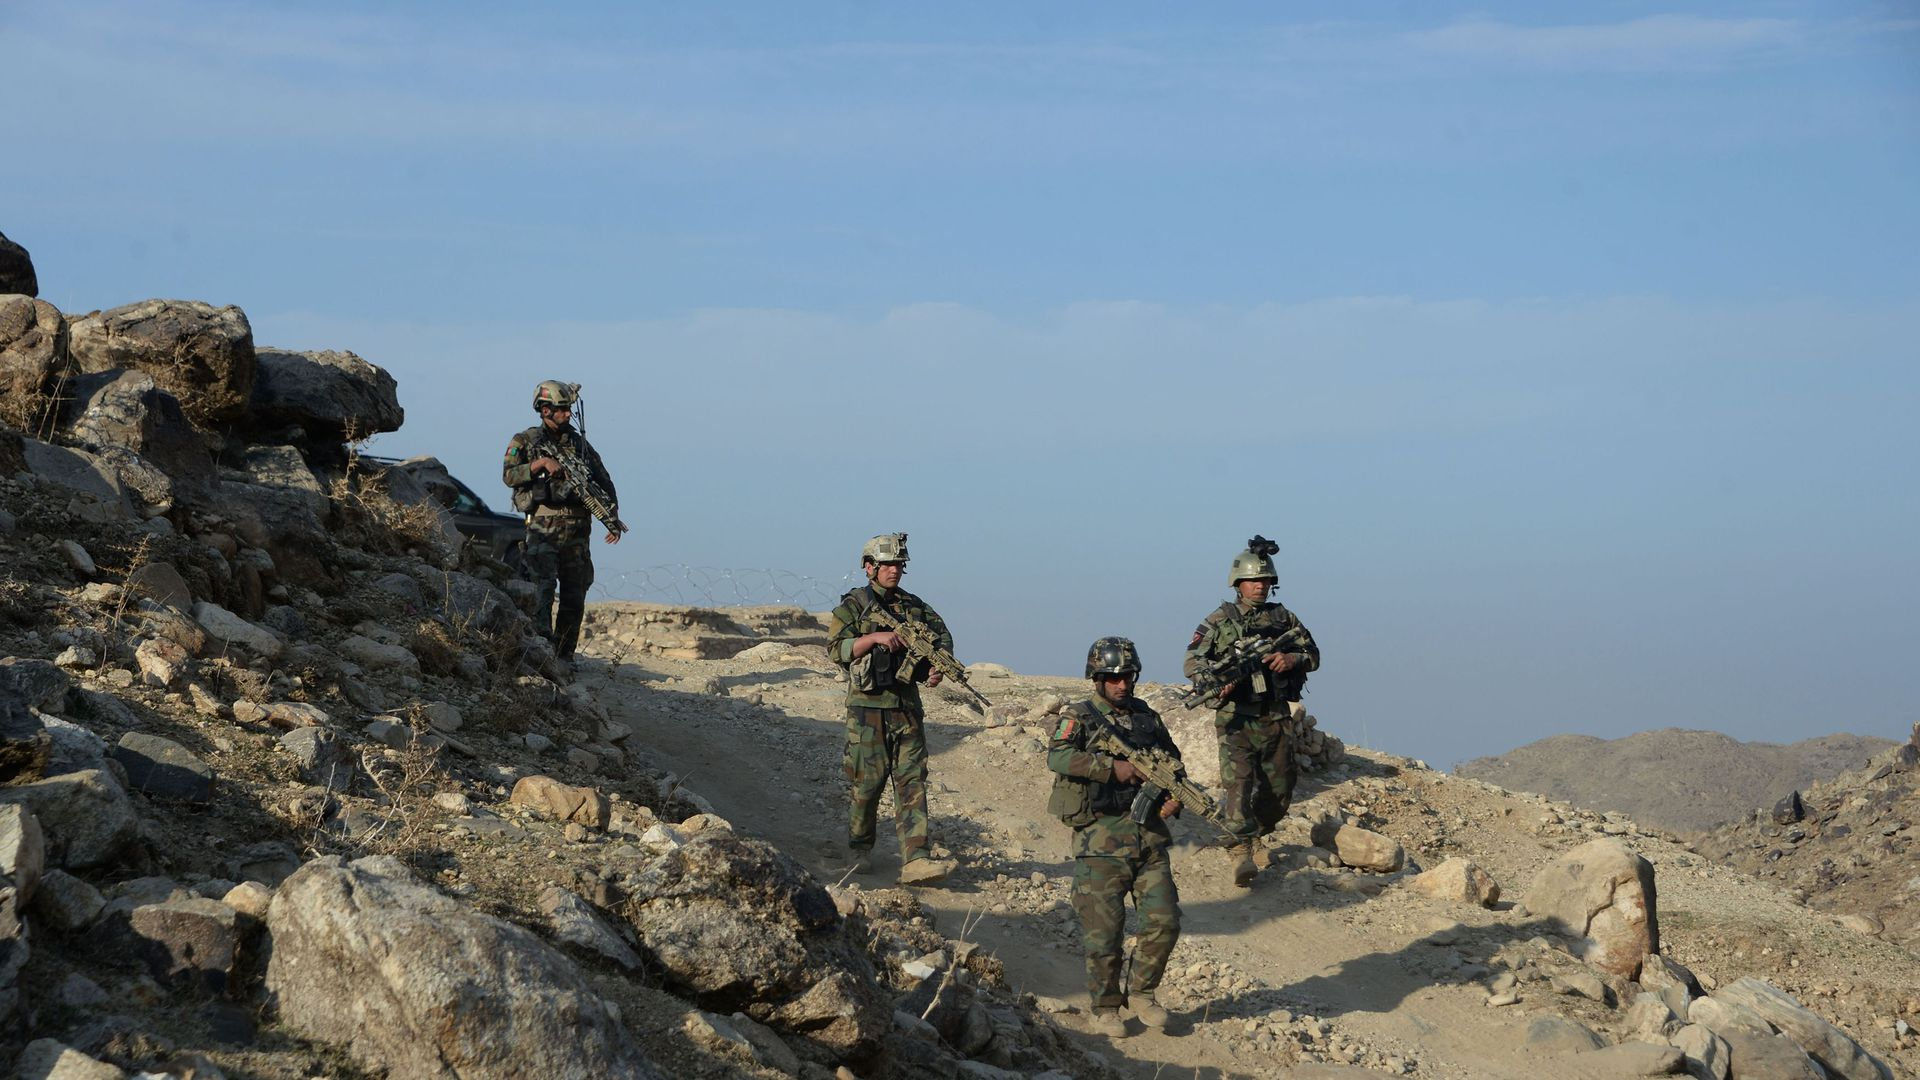 Afghan commando forces on patrol